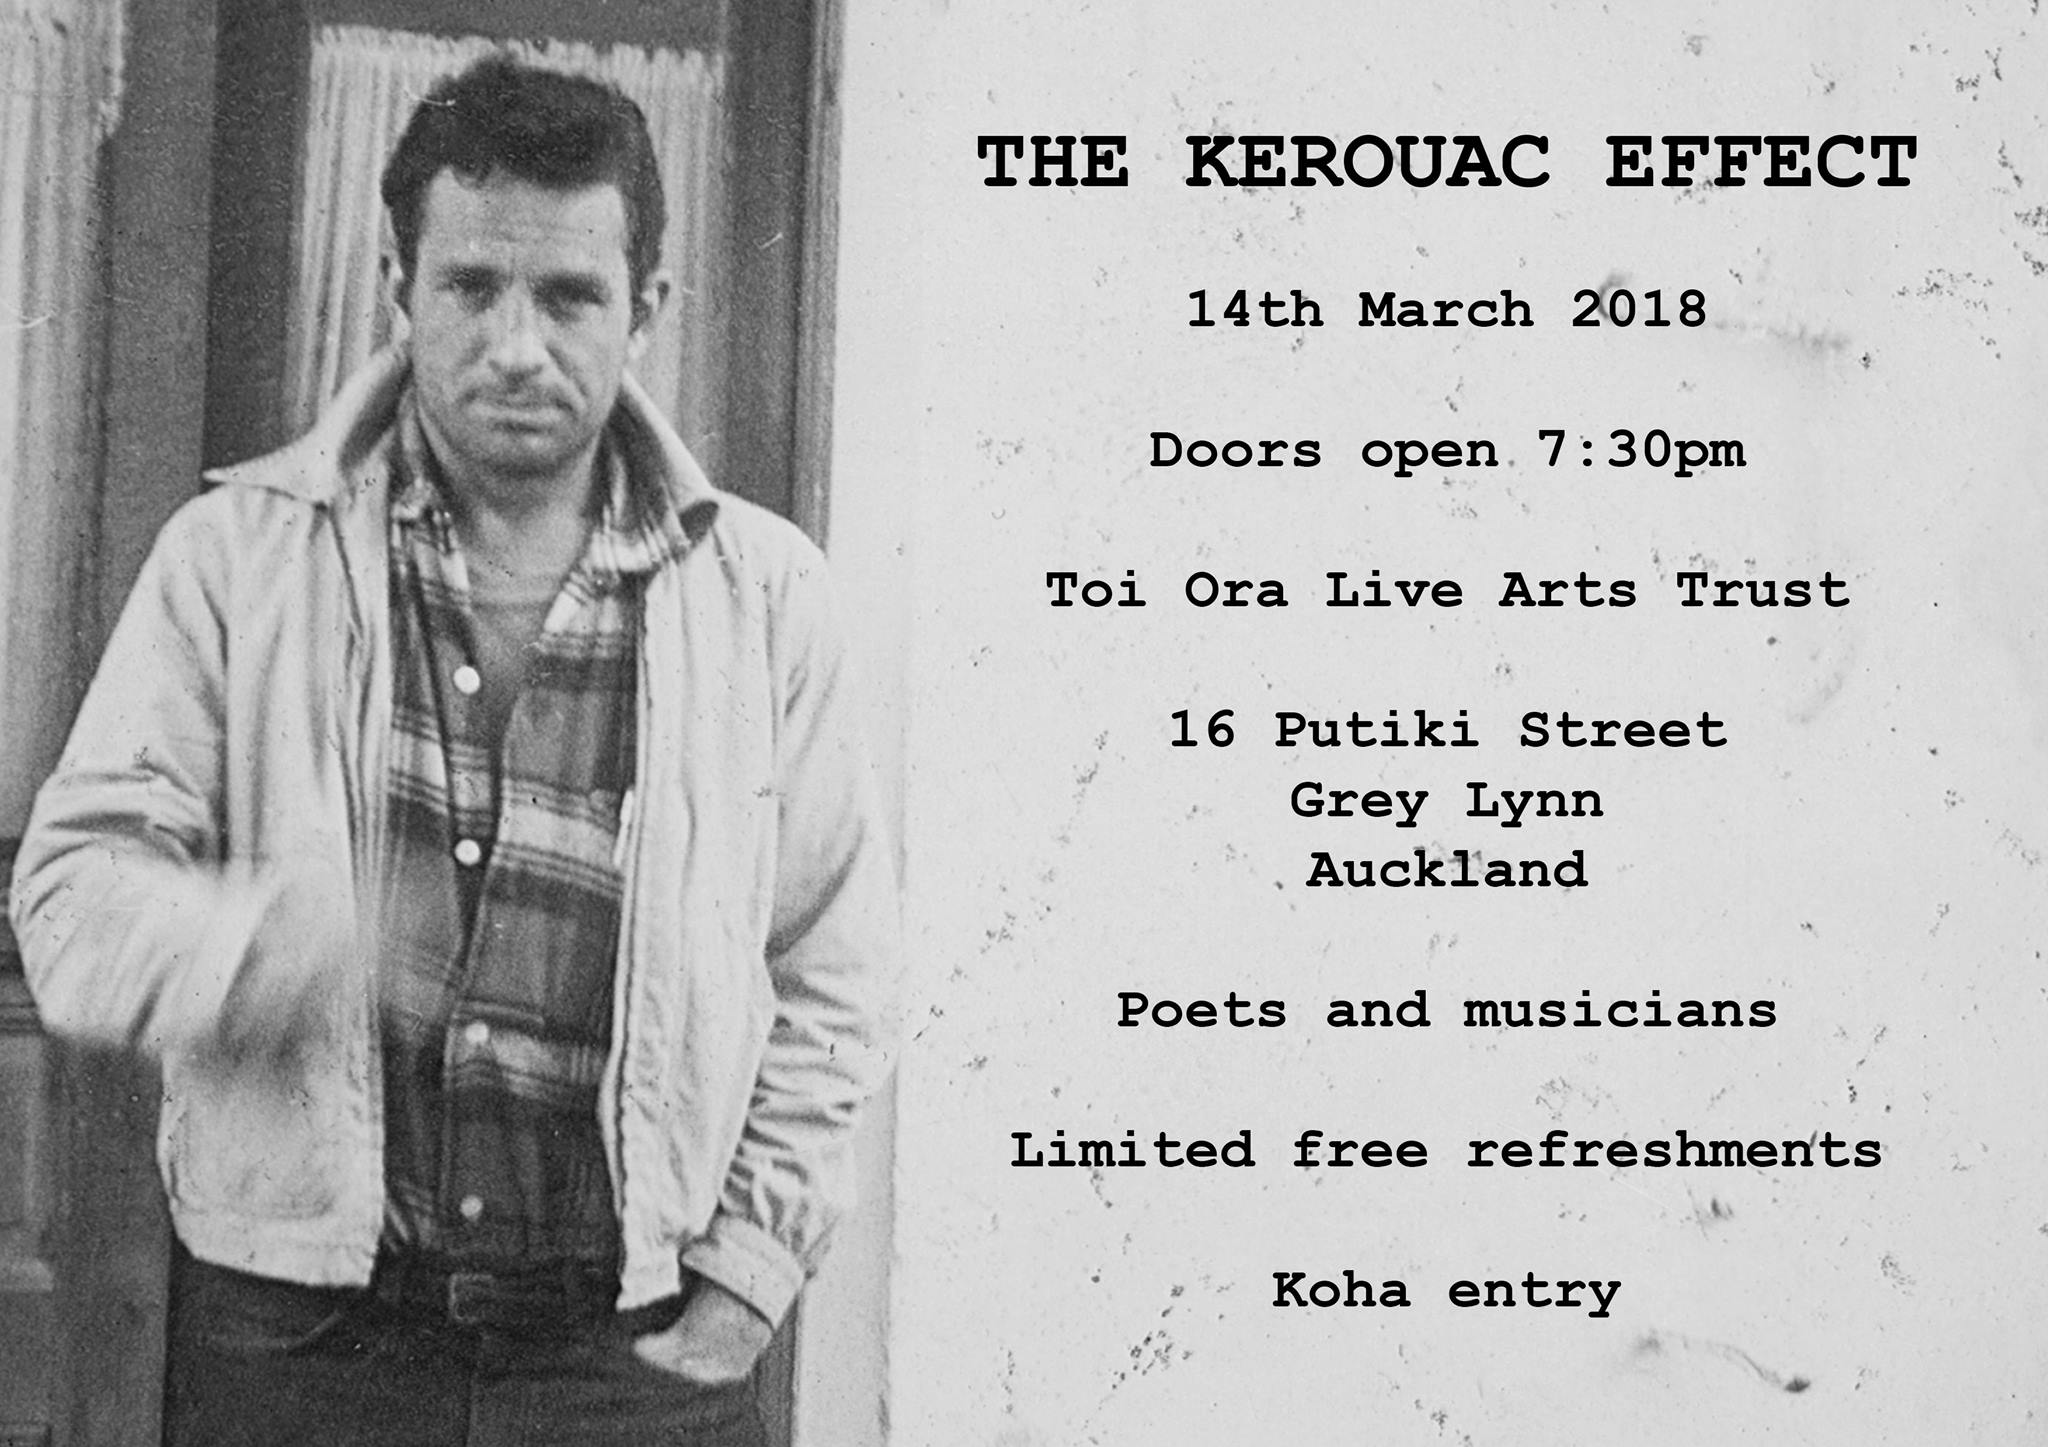 The Kerouac Effect 2018